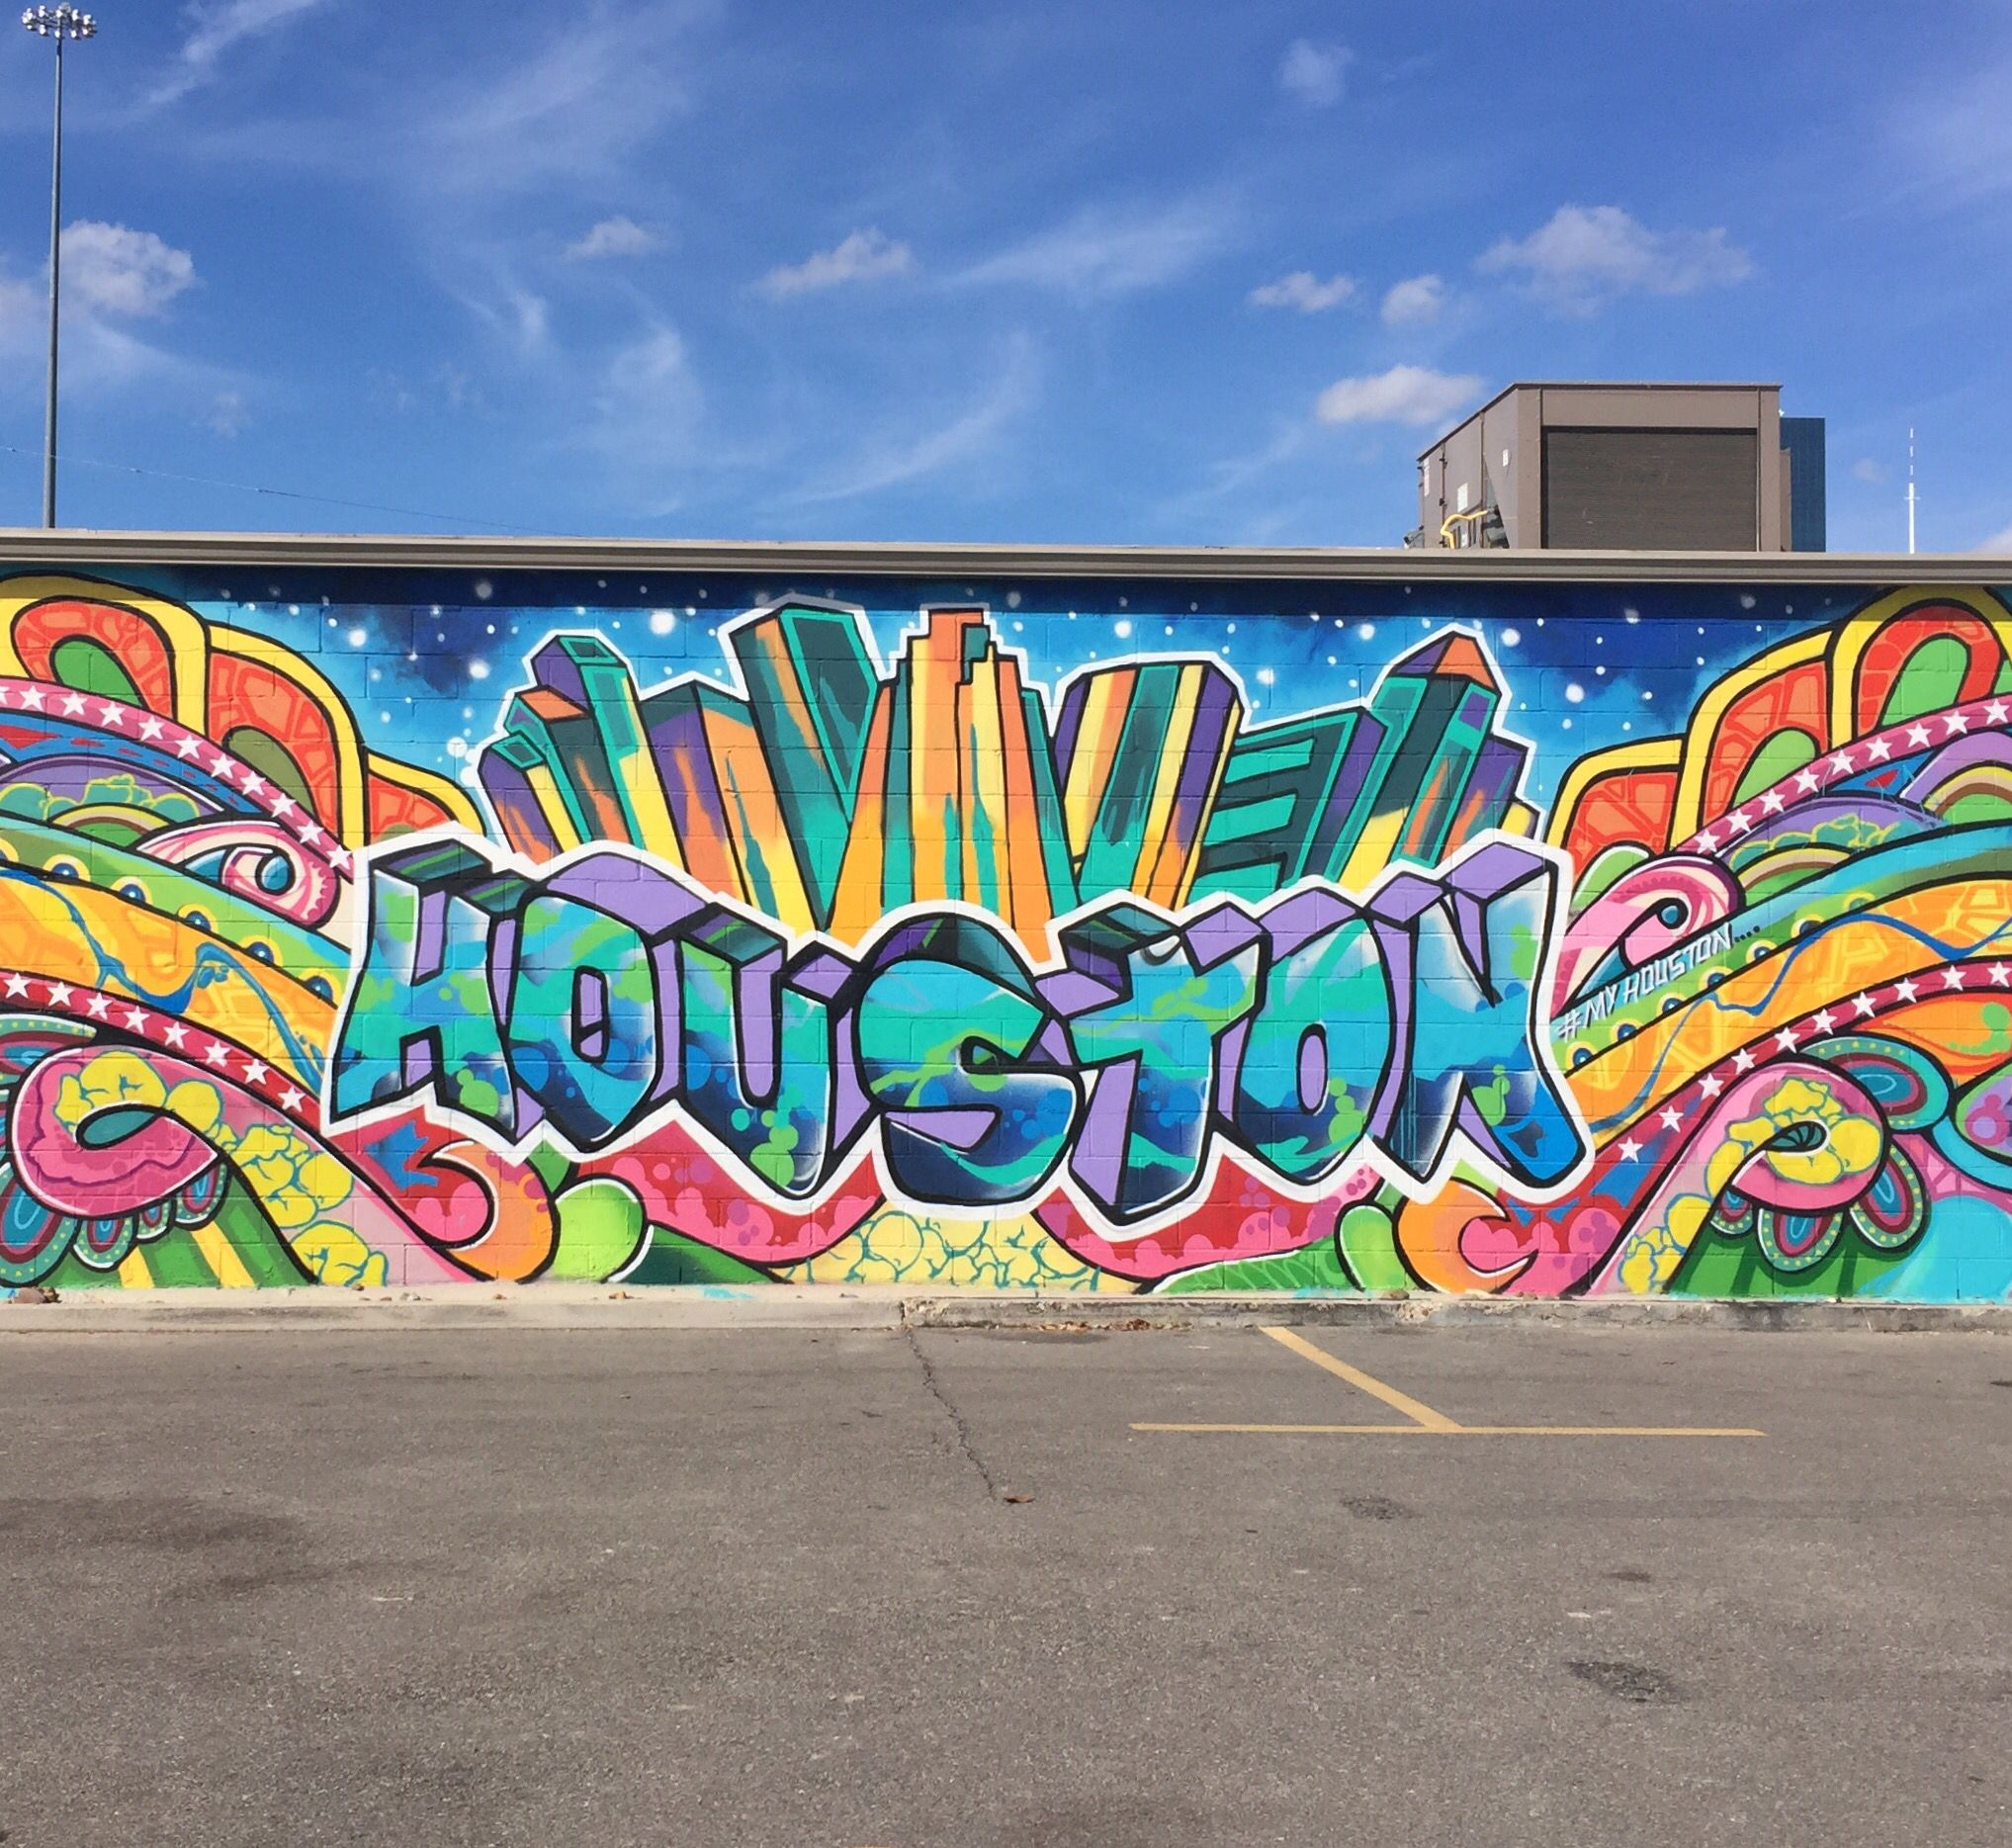 Houston Wall Art studiodiywallcrawl: the best walls in houston | walls, texas and